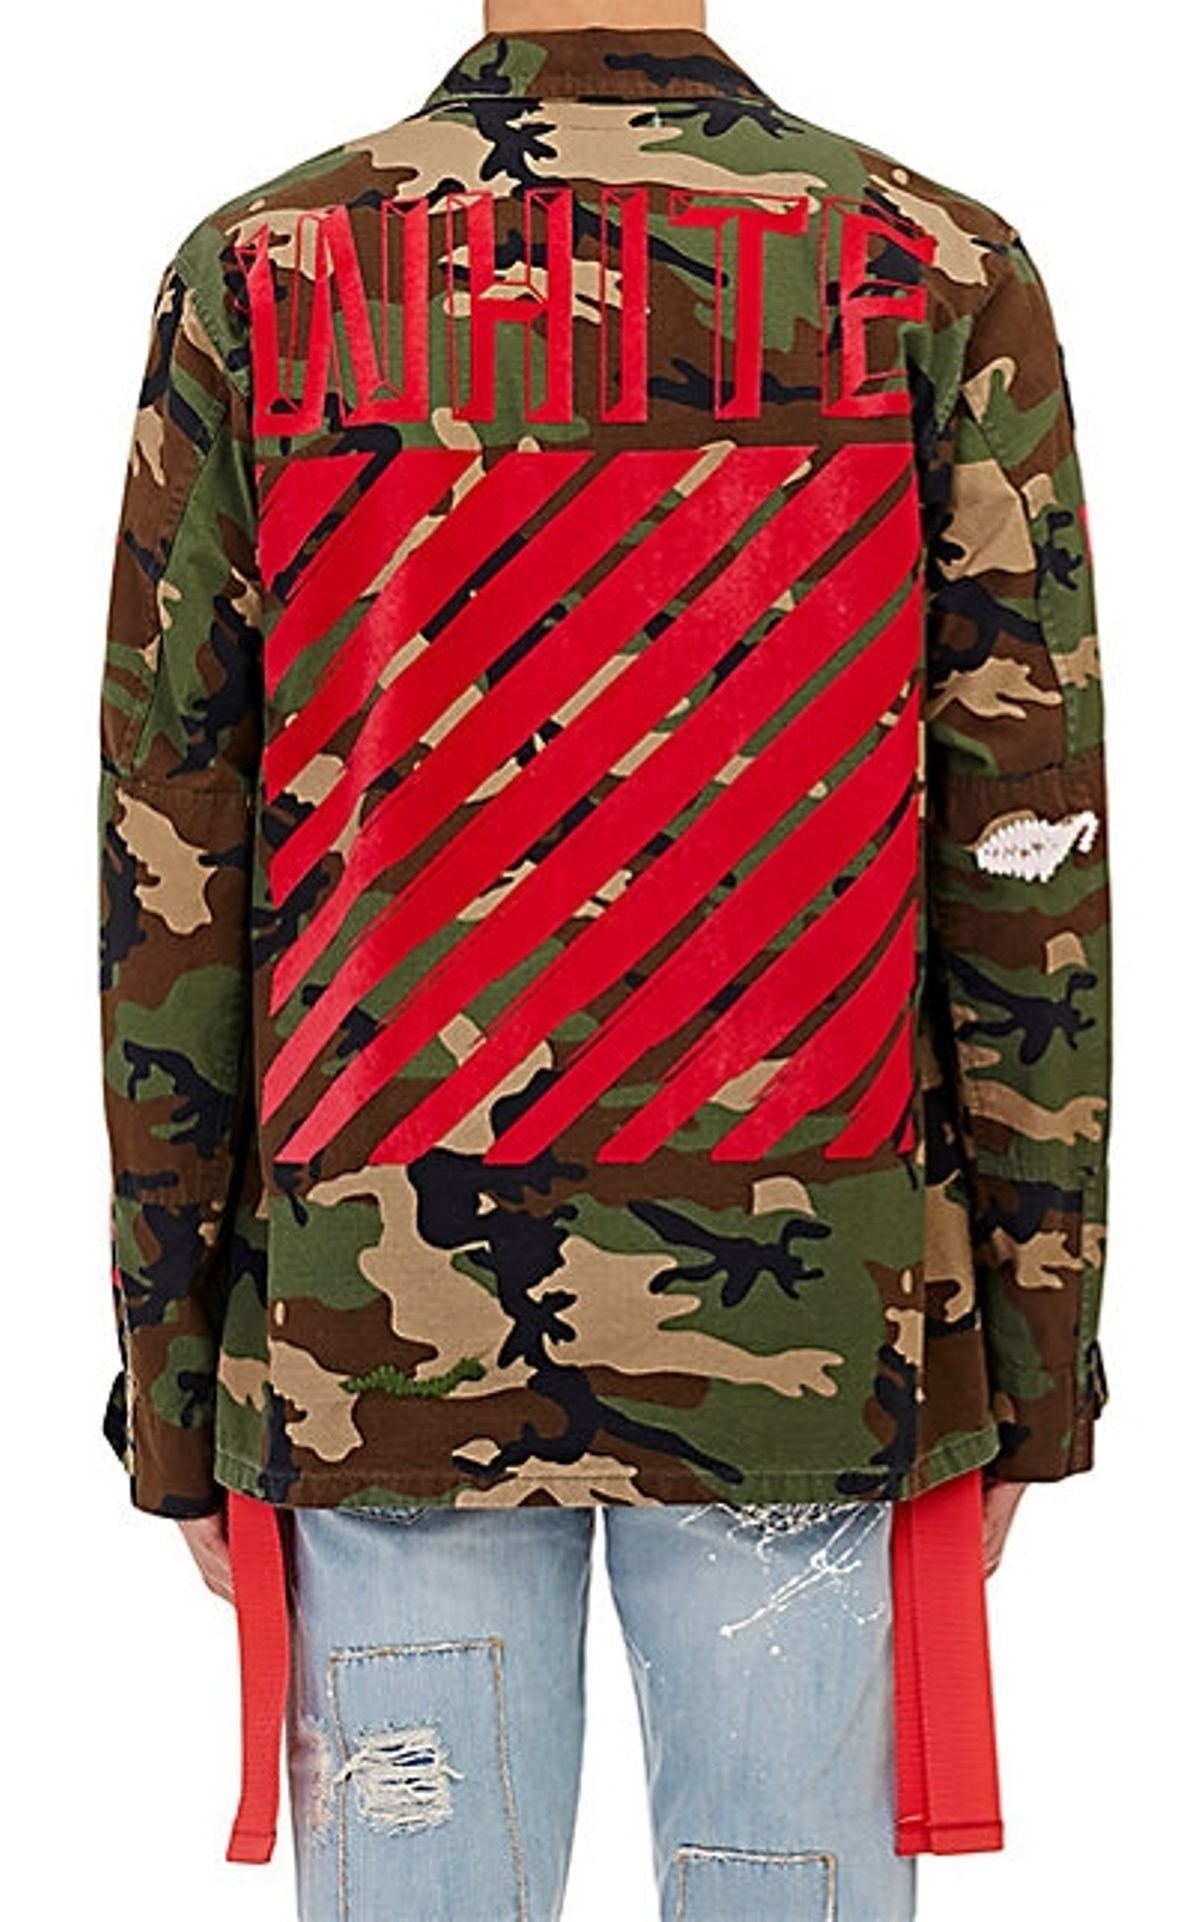 fd4d5b886ff Off White Embroidered Camo Field Jacket Size L  1000 - Grailed ...